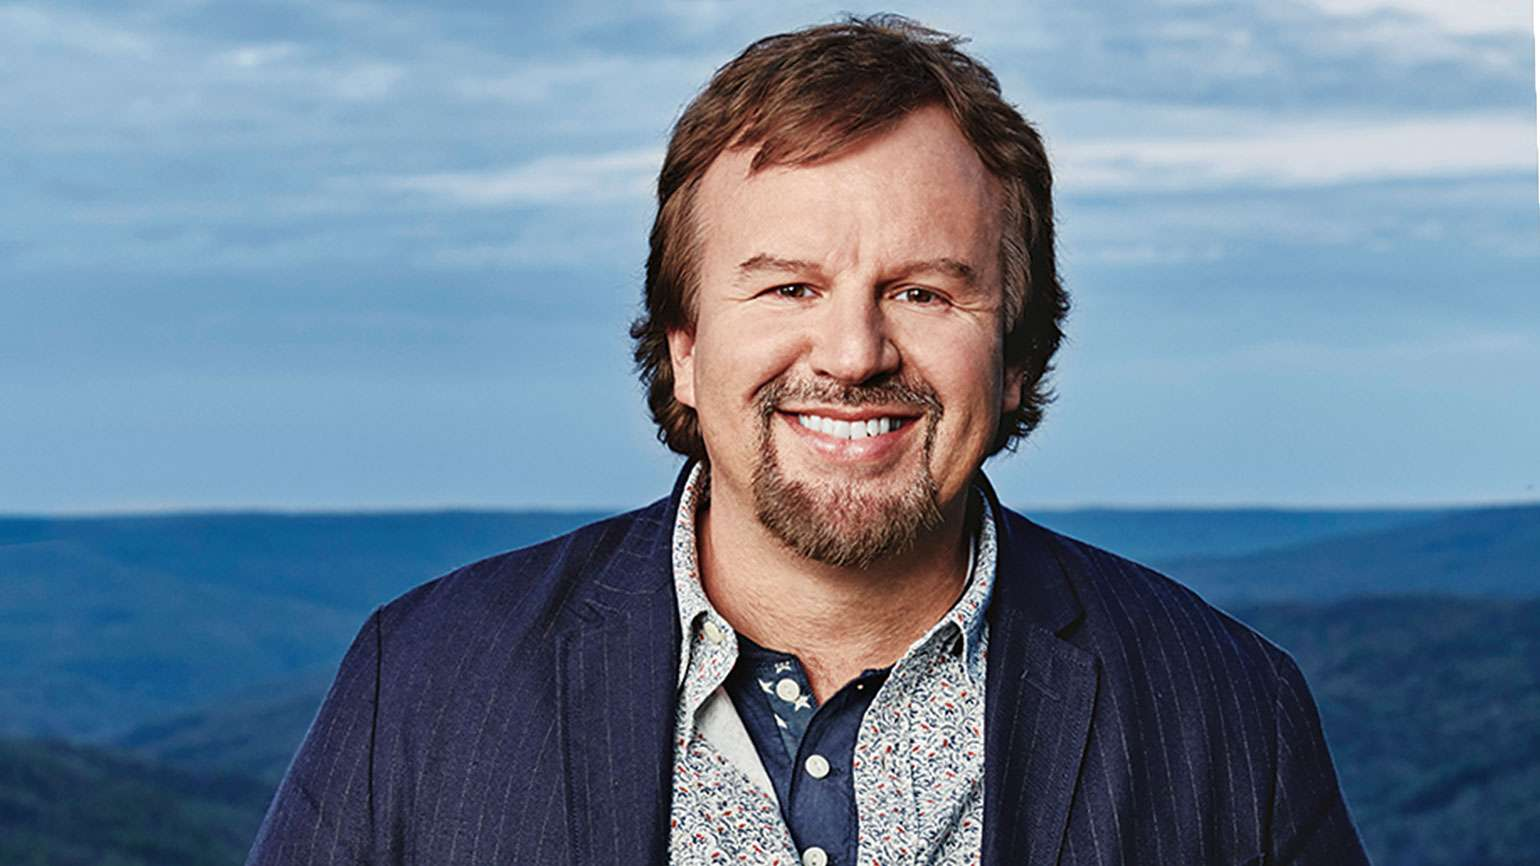 """""""I didn't need to hold it together anymore. I needed to be held,"""" says Mark Hall of Casting Crowns"""